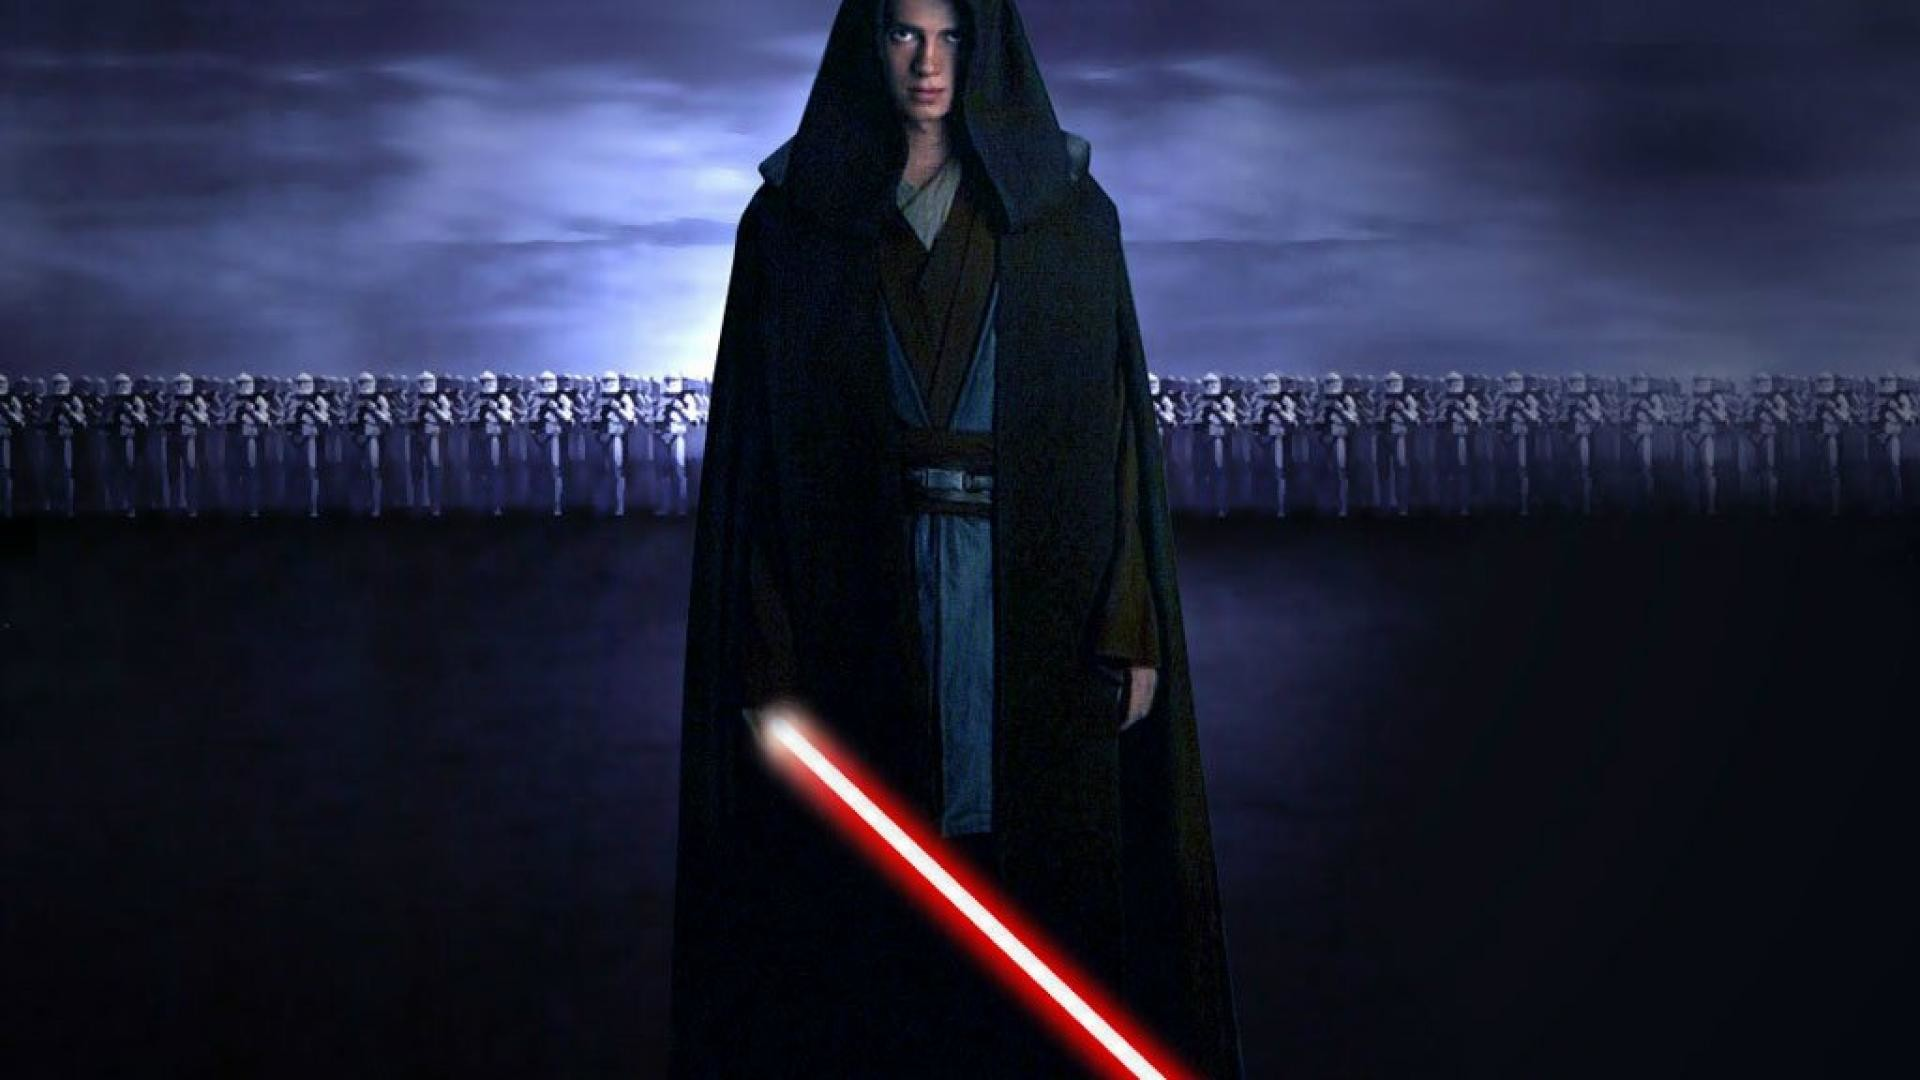 … star wars sith wallpapers for android epic wallpaperz …